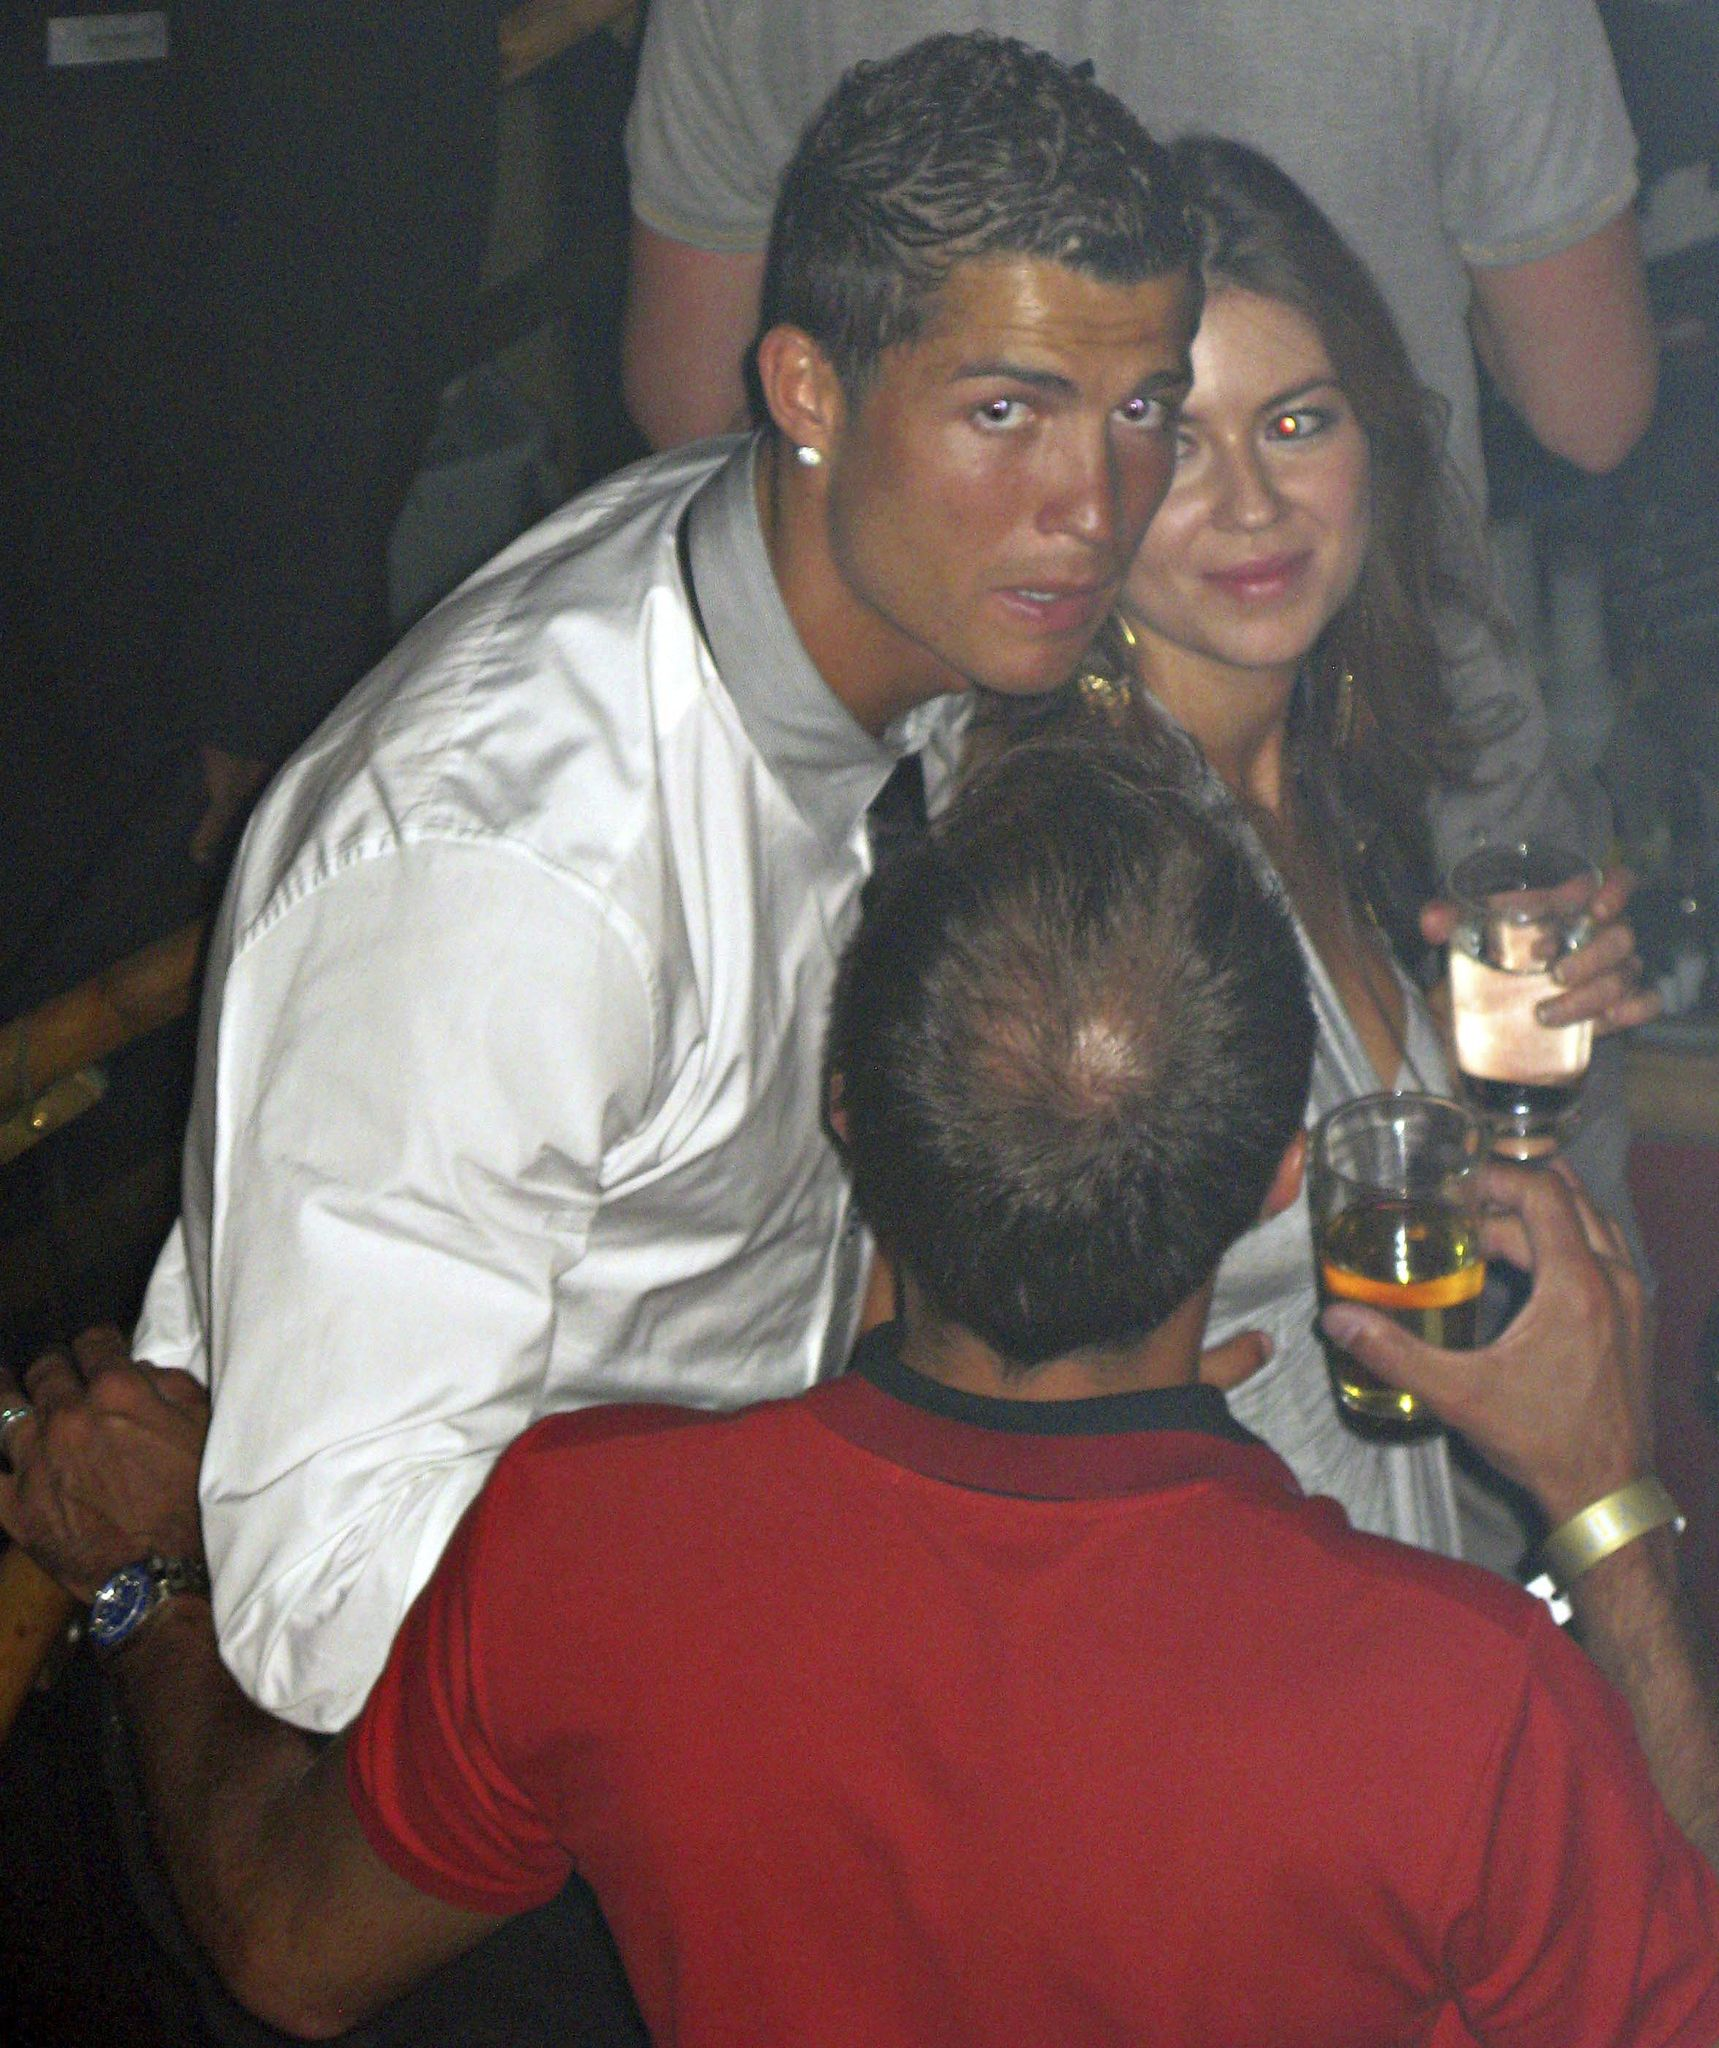 German magazine stands by its reporting on Ronaldo - Washington Times